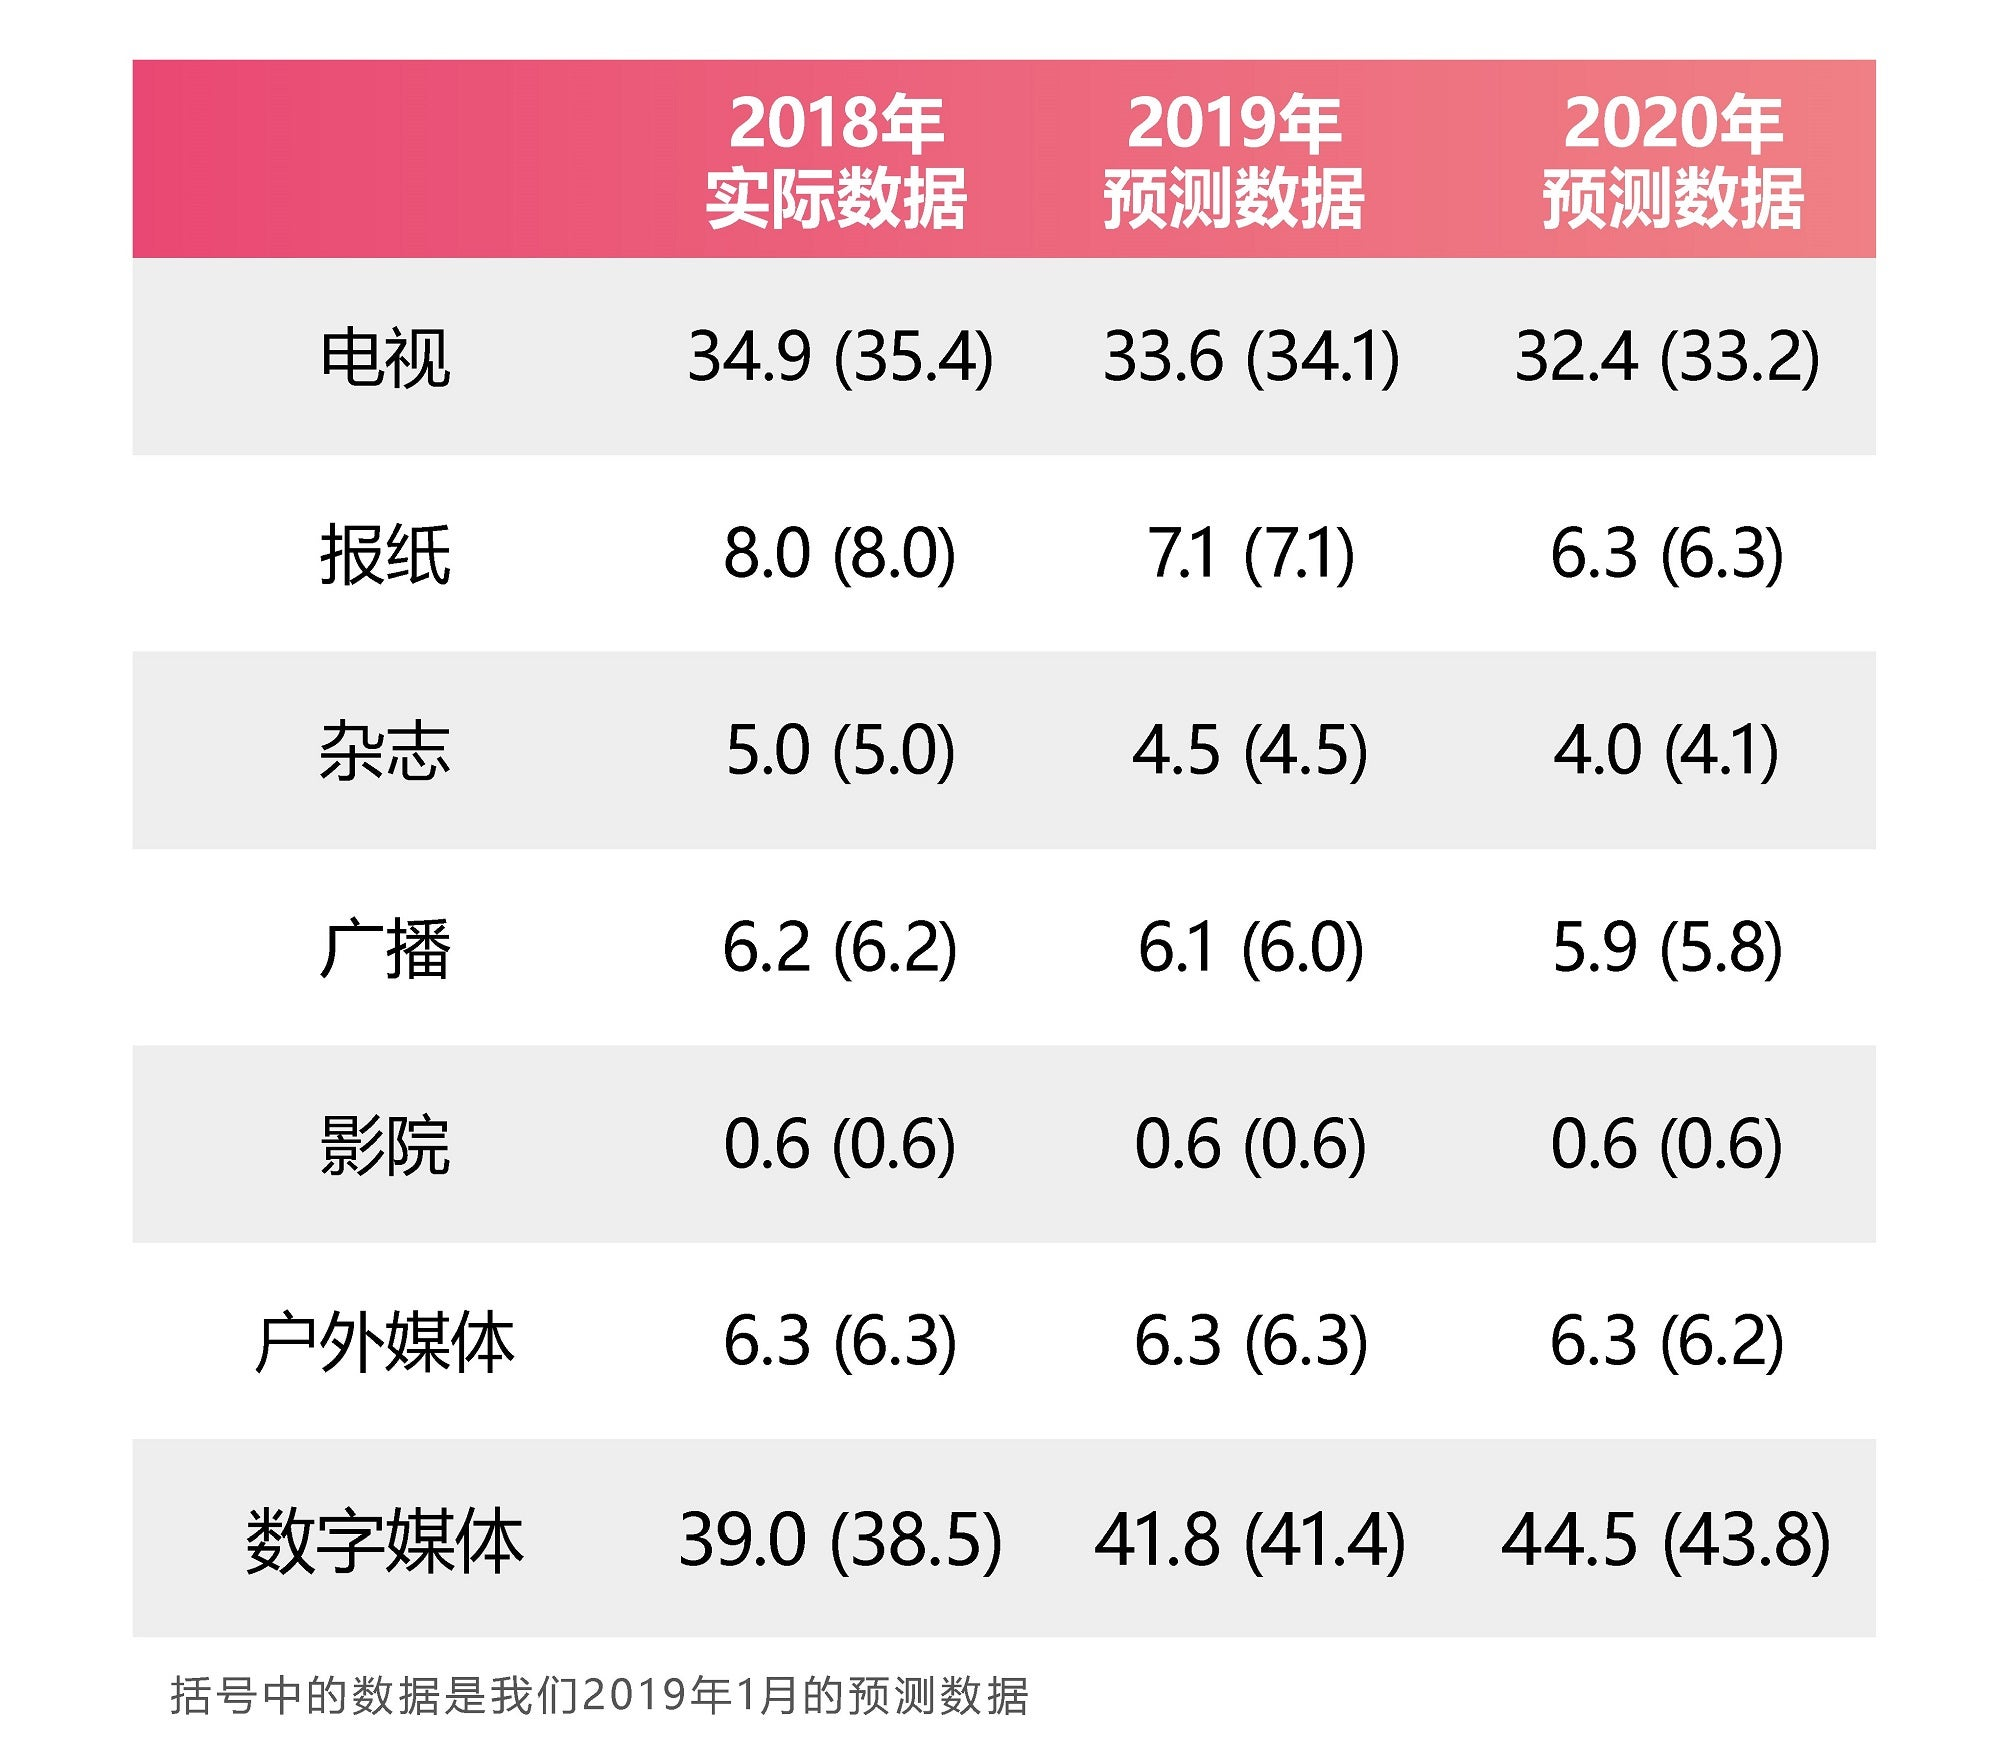 Adspend_2019_Forecast_Summary_cn